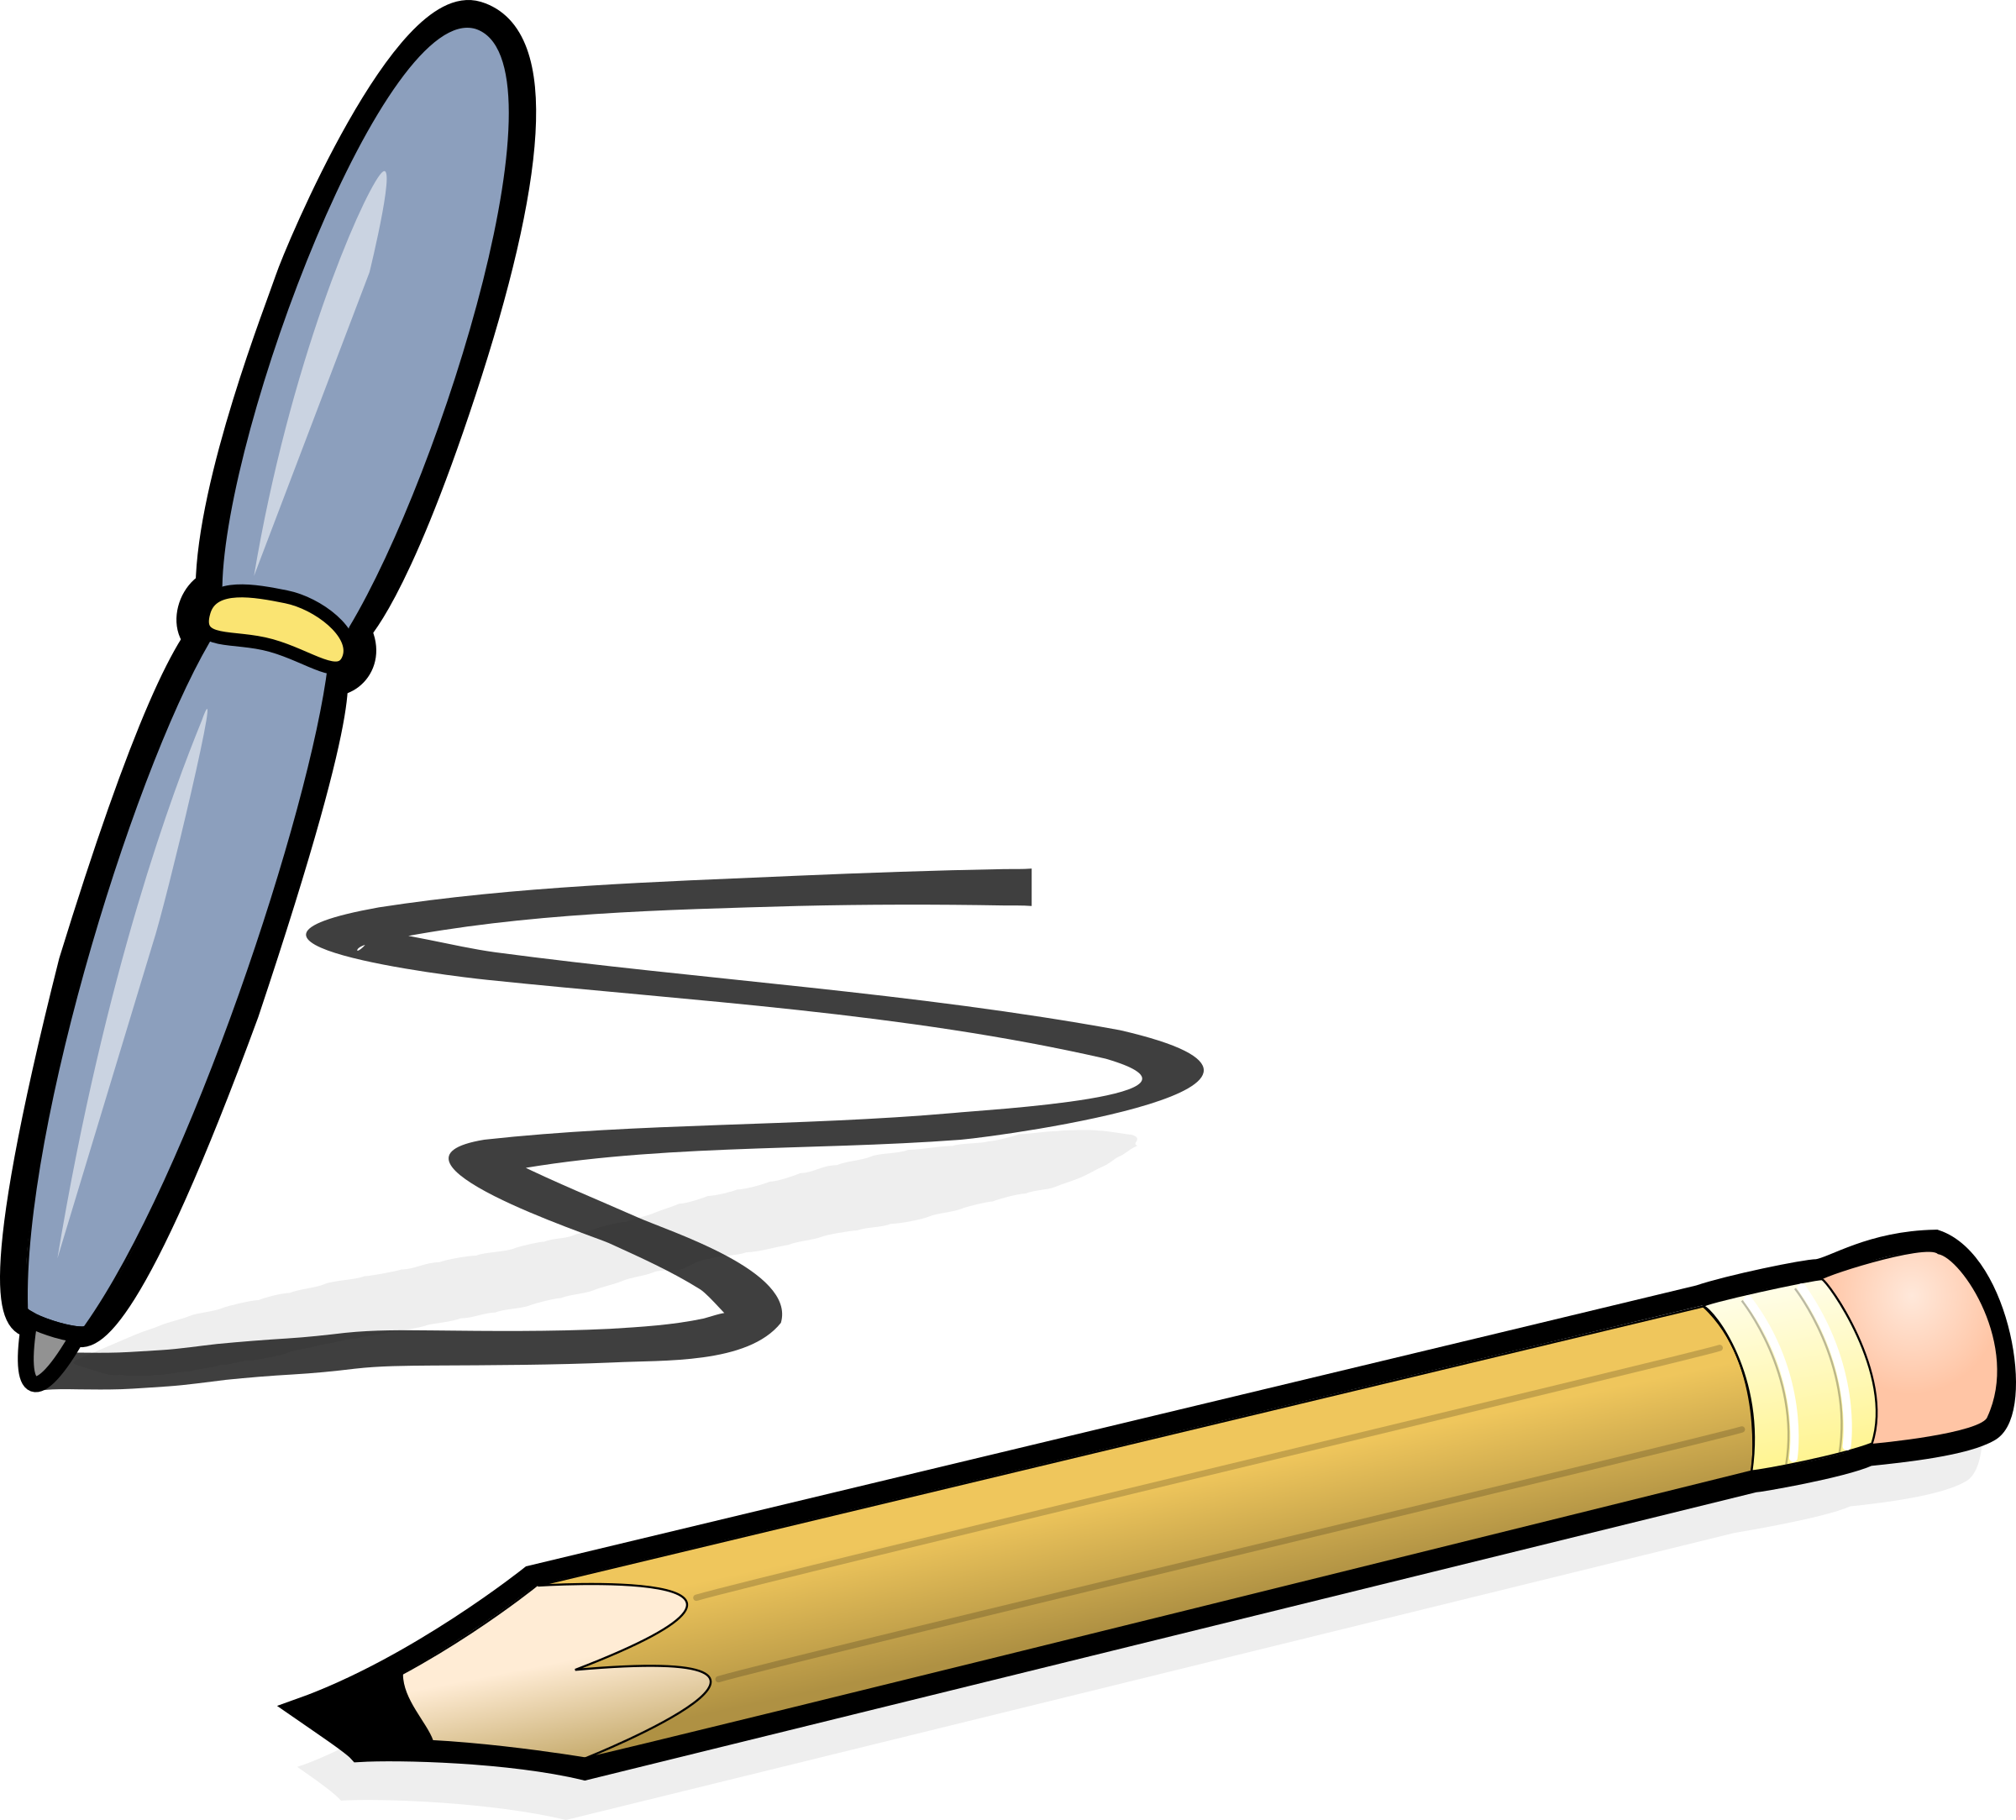 Pen writing clipart 6 » Clipart Station.